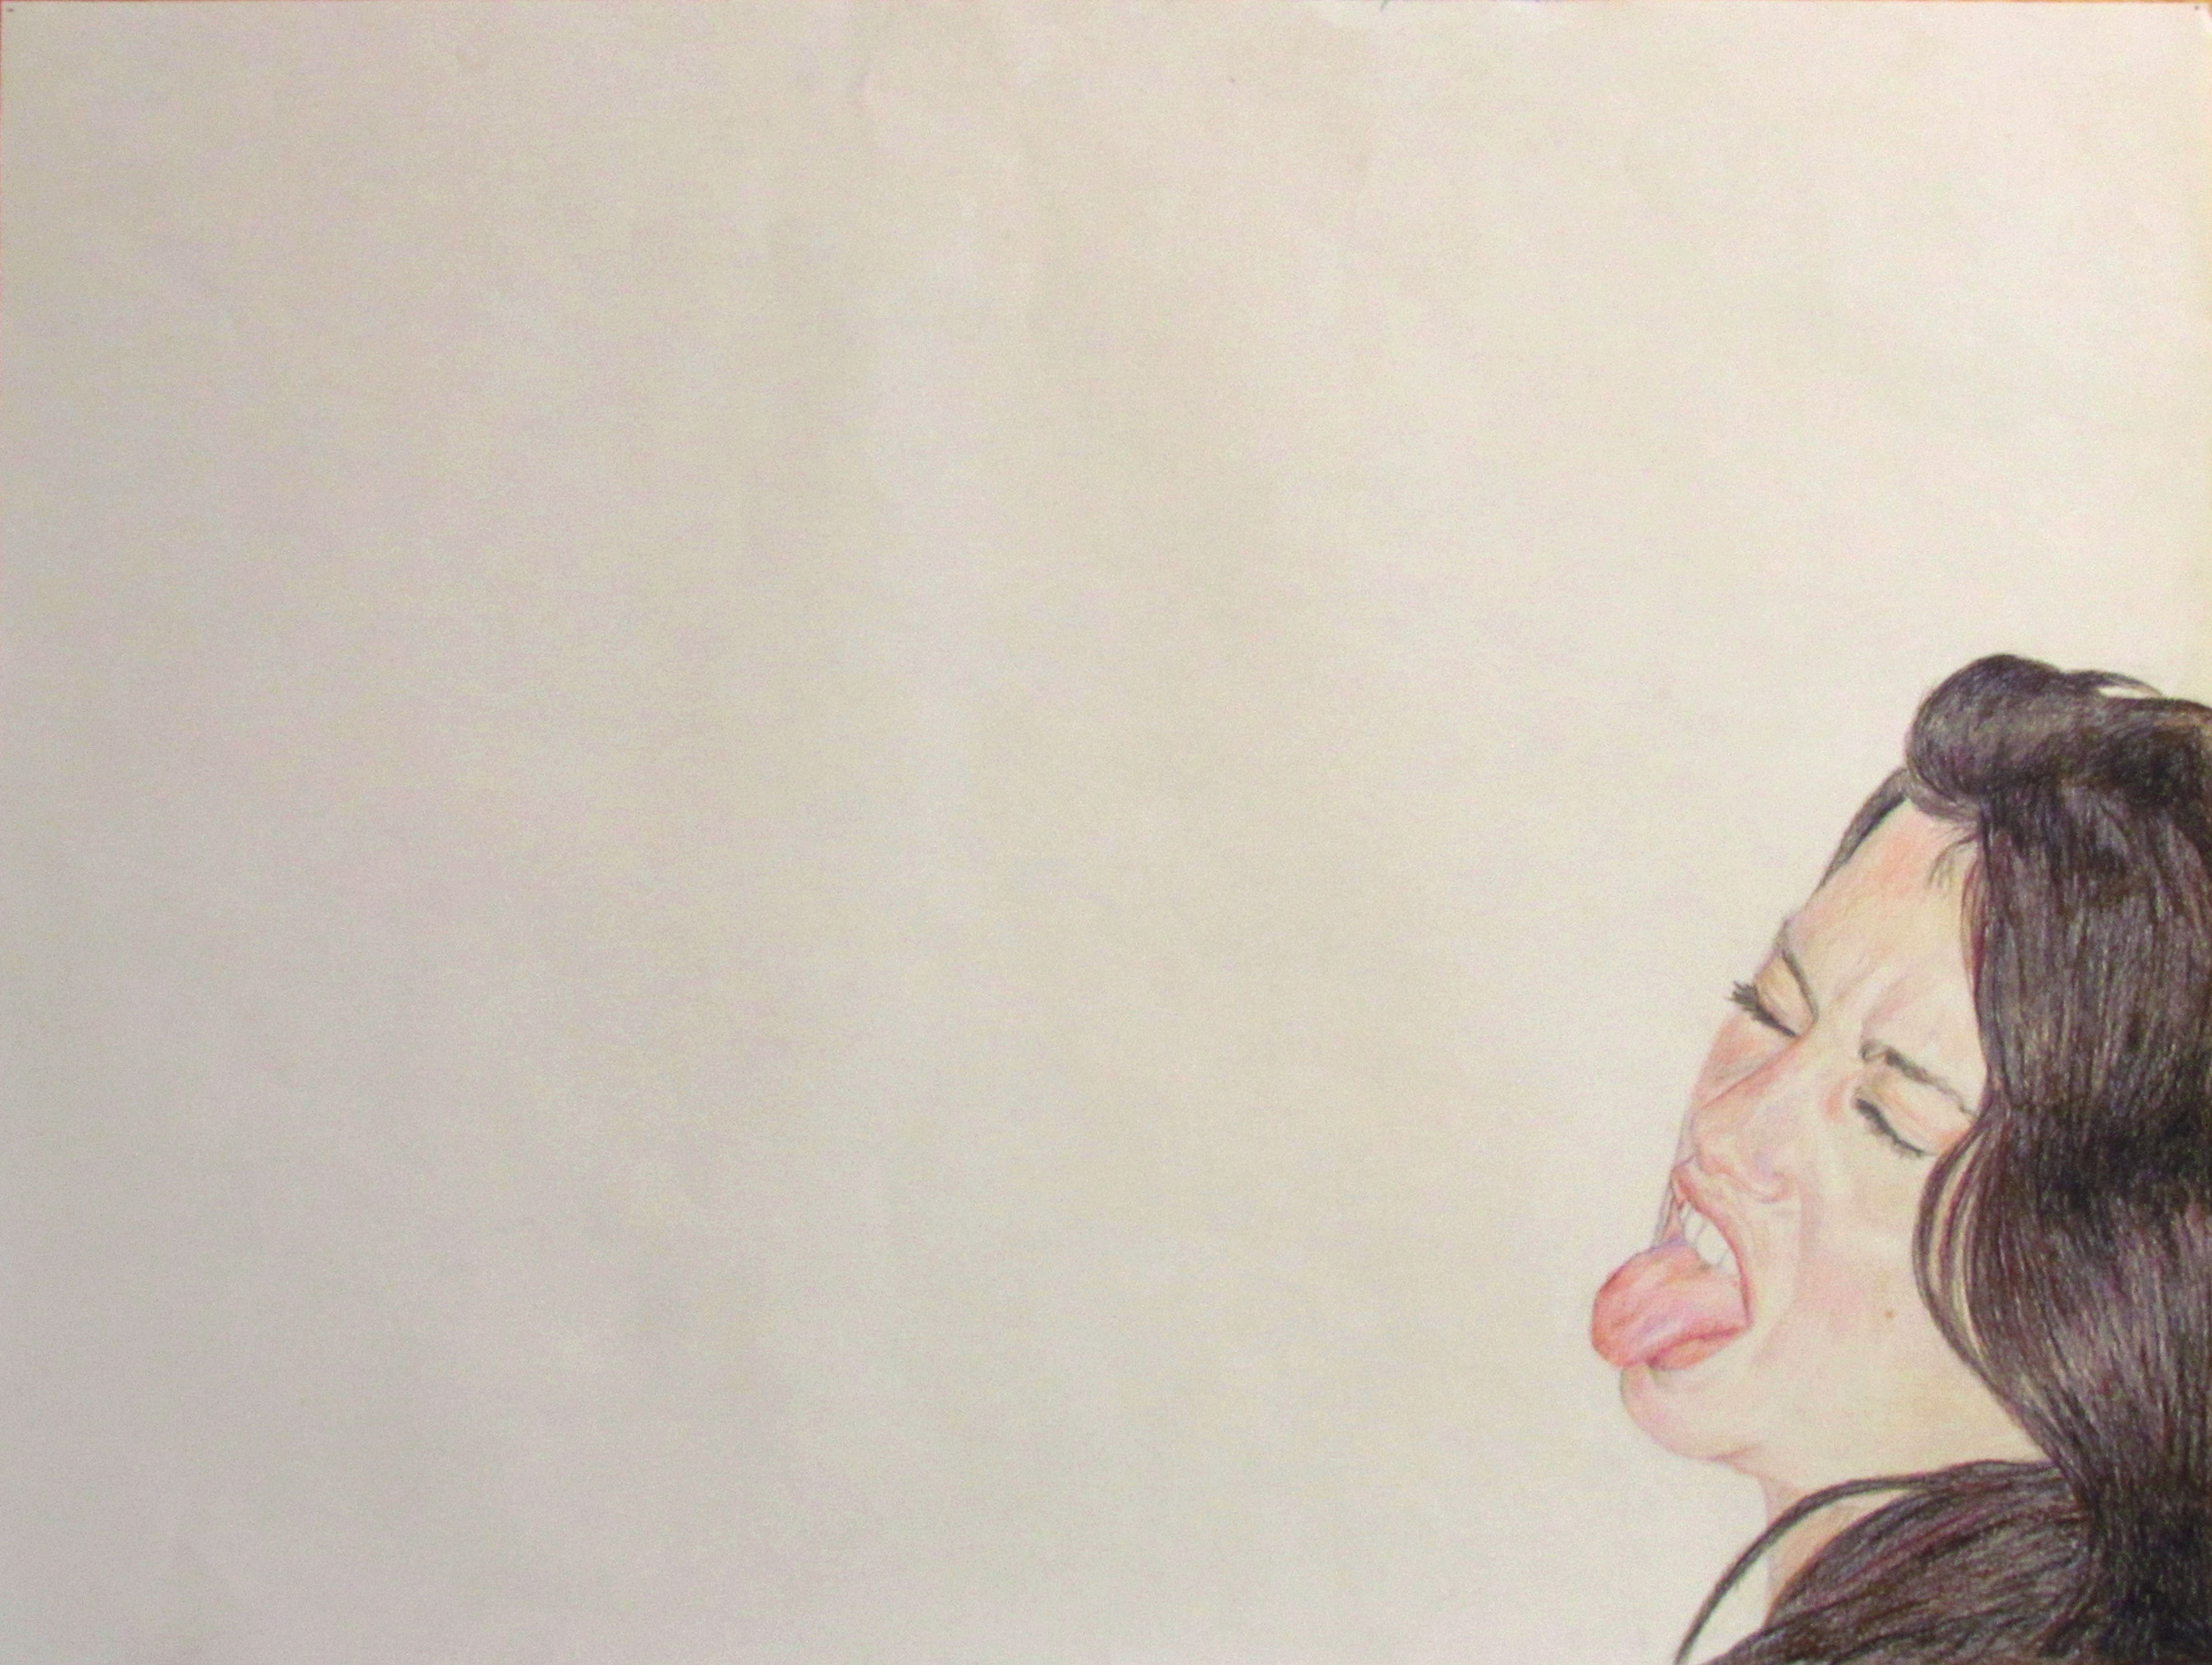 Kelly's Response to a Flash , 2010, Colored Pencil on Paper,30 inches (76.2 cm) x 40 inches (101.6 cm)